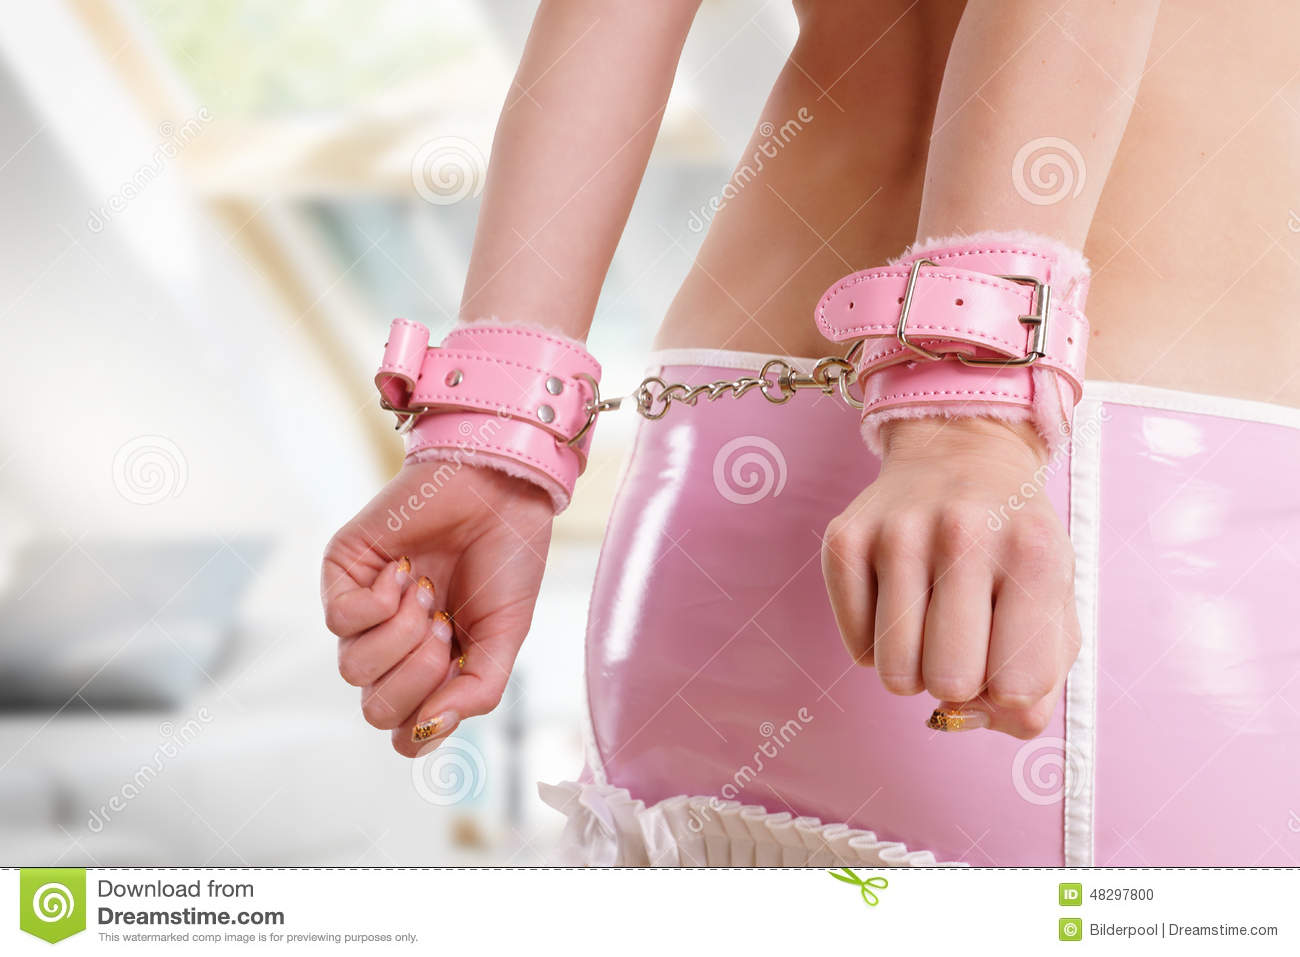 Handcuffs Stock Photo - Image: 48297800